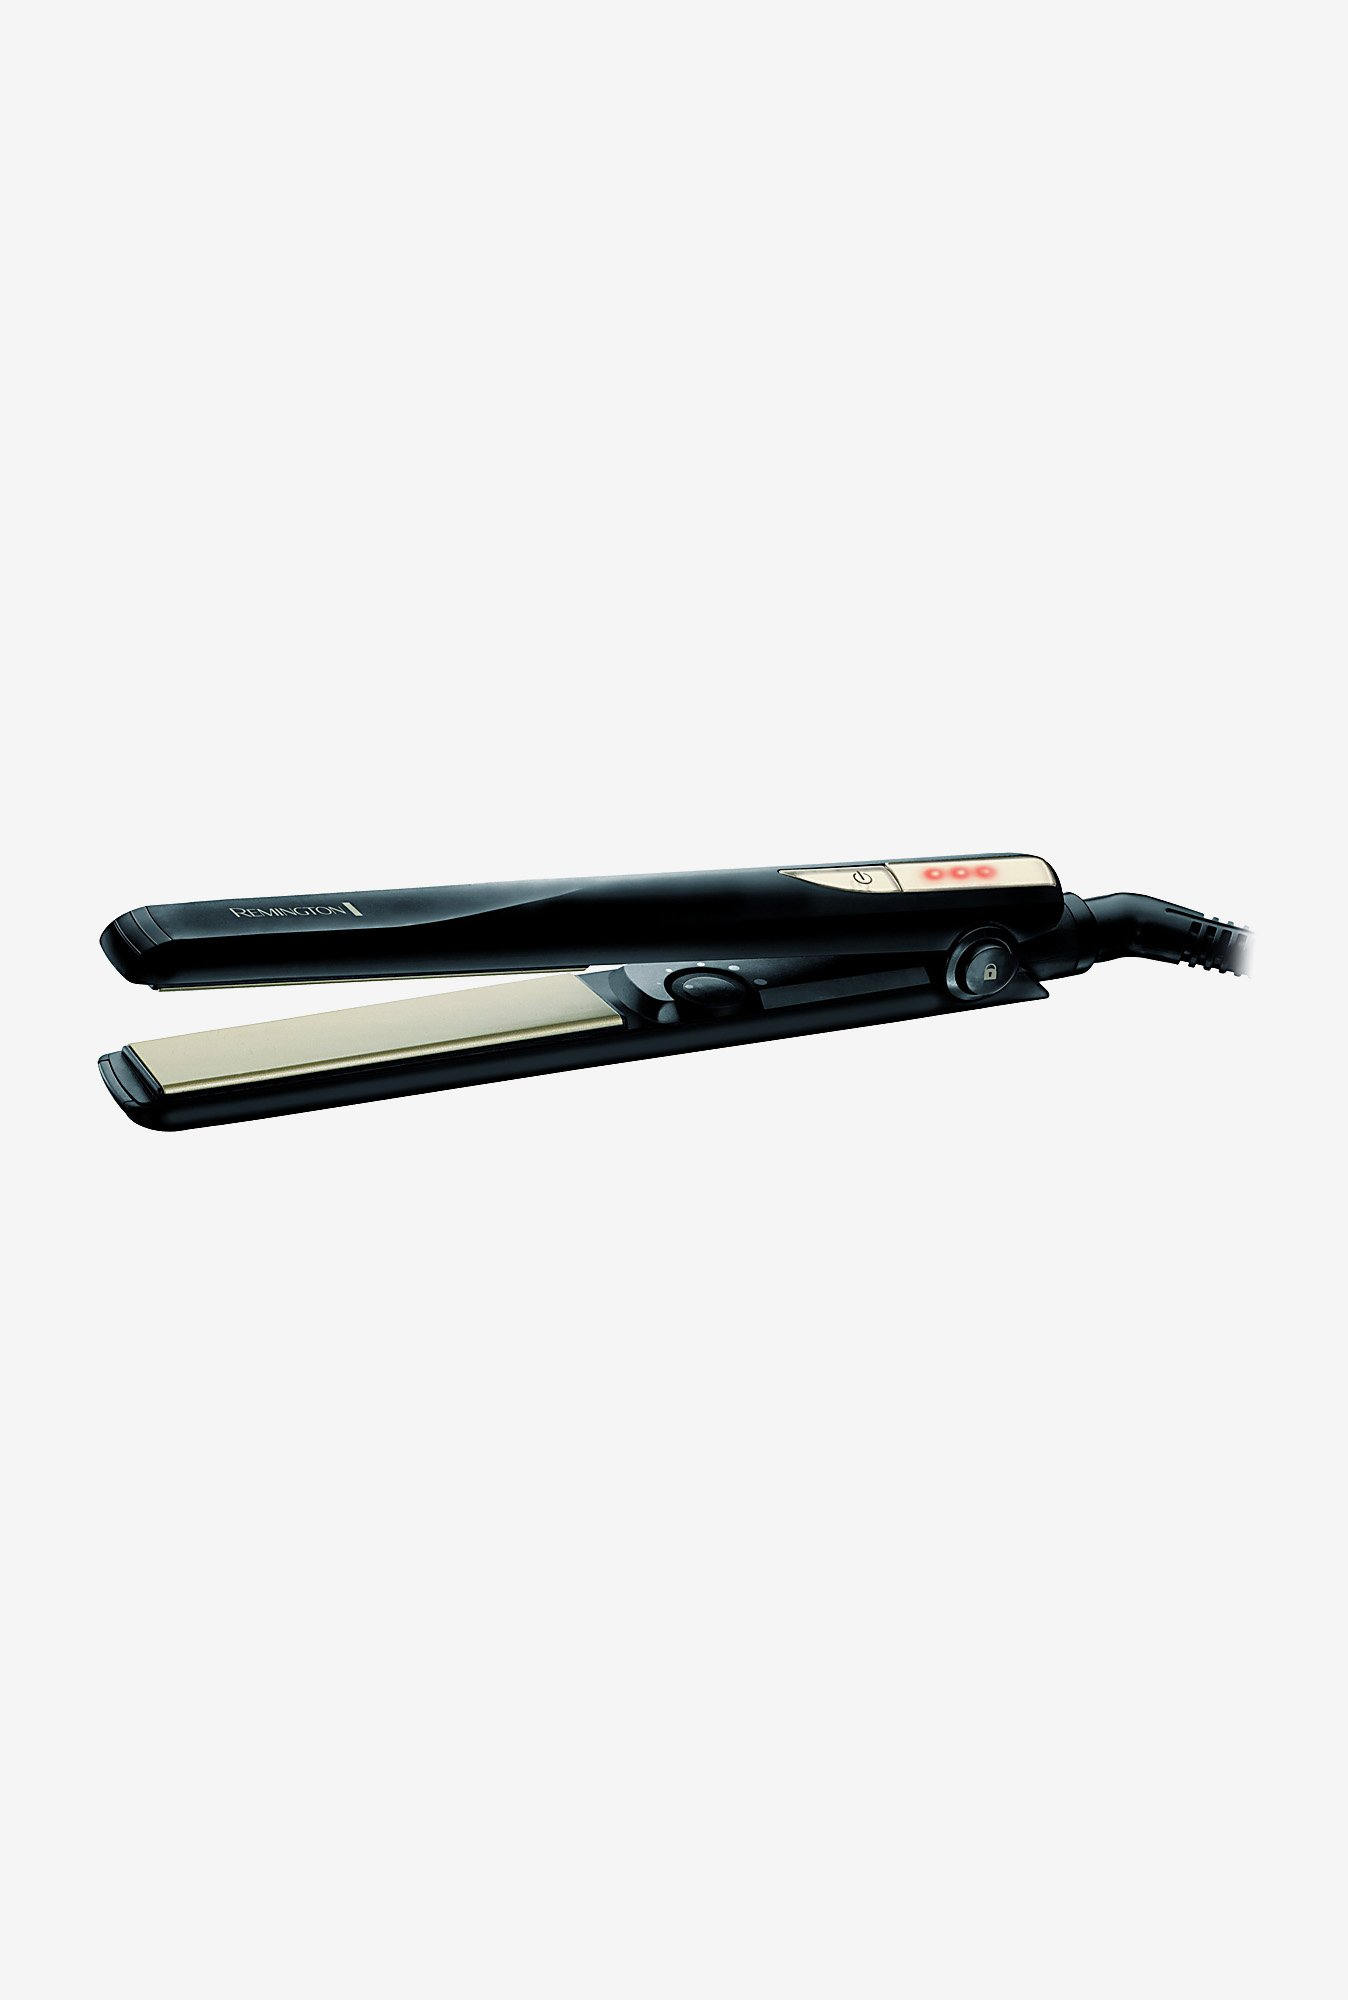 Remington S1005 Hair Straightener (Black)